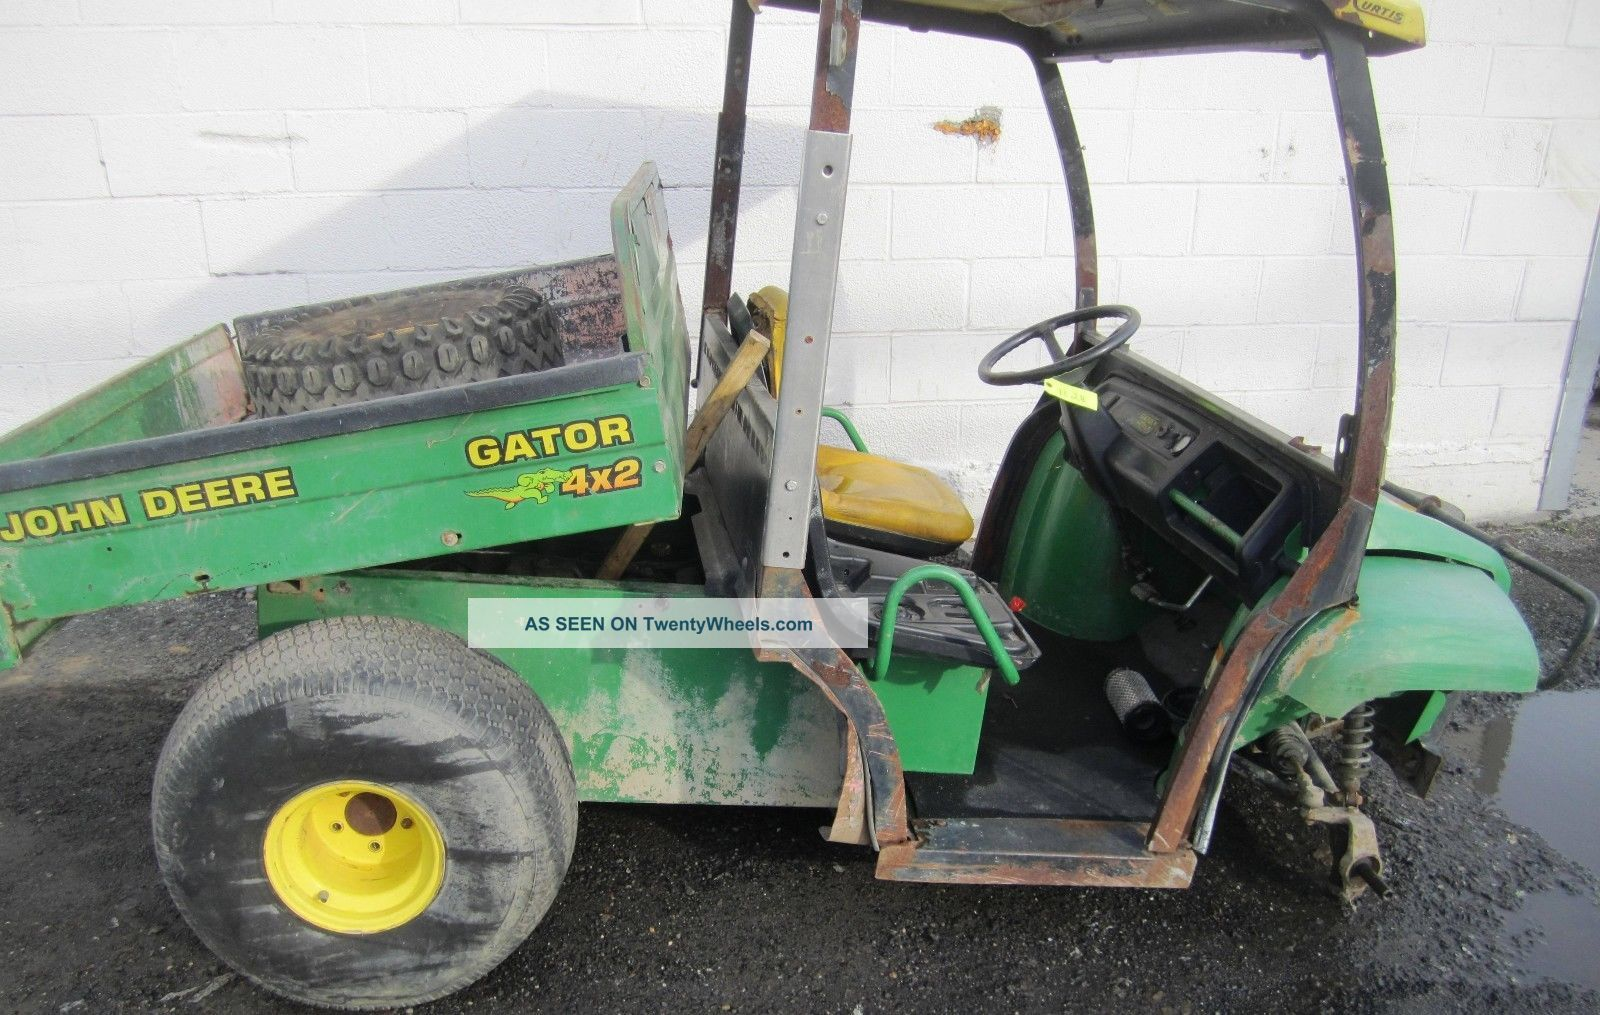 John Deere Gator Parts Www Hpx 4x4 Wiring Diagram For Gators And Utility Vehicles